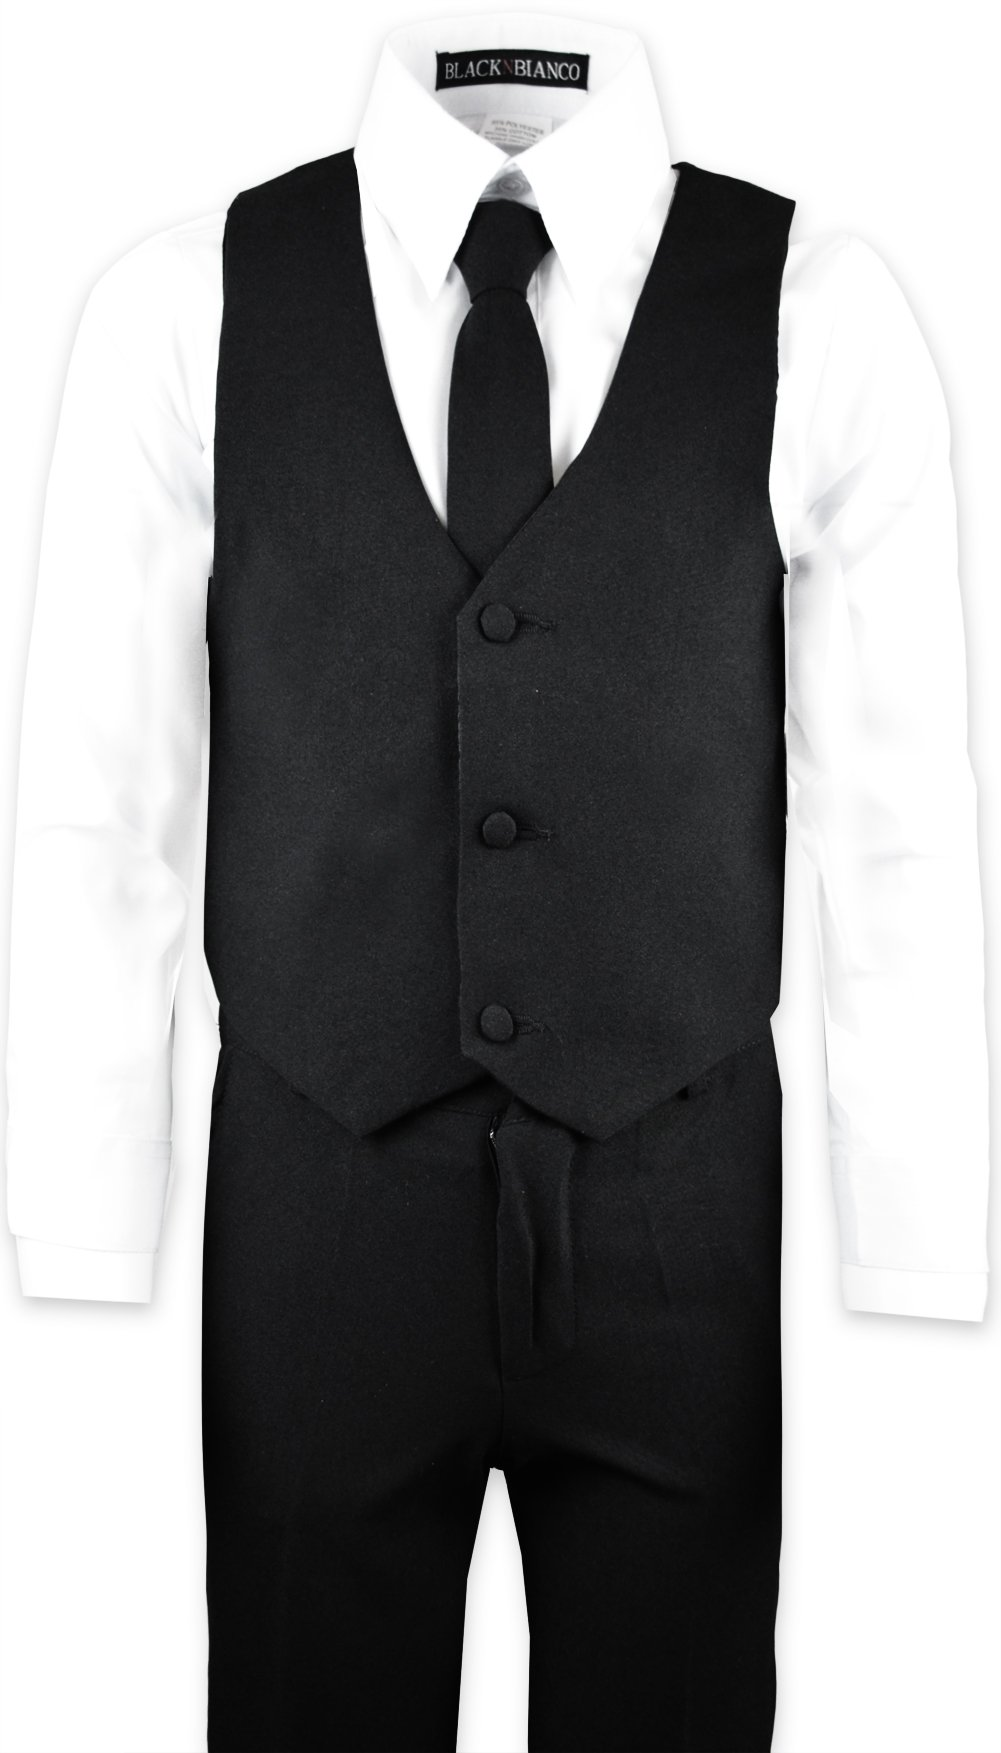 Boys Black Tuxedo Suit with Tie Young Boys Youth Size 16 by Black n Bianco (Image #6)